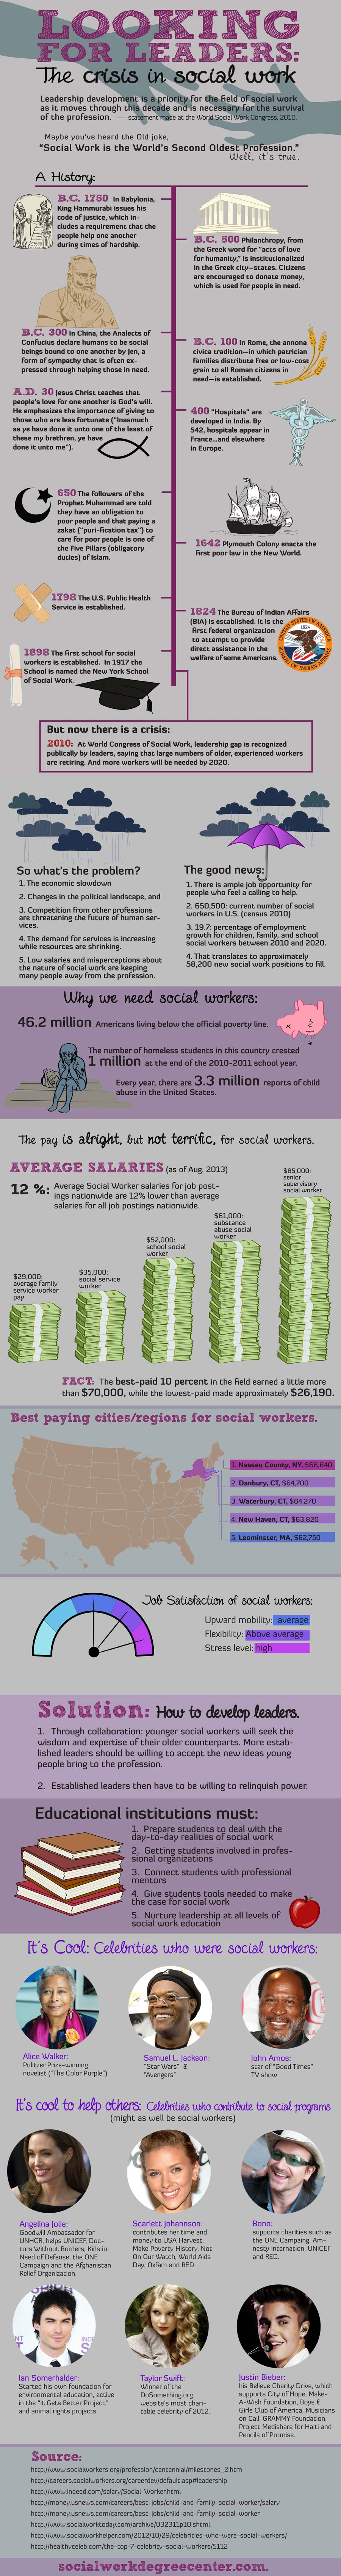 Social Workers Wanted-Infographic